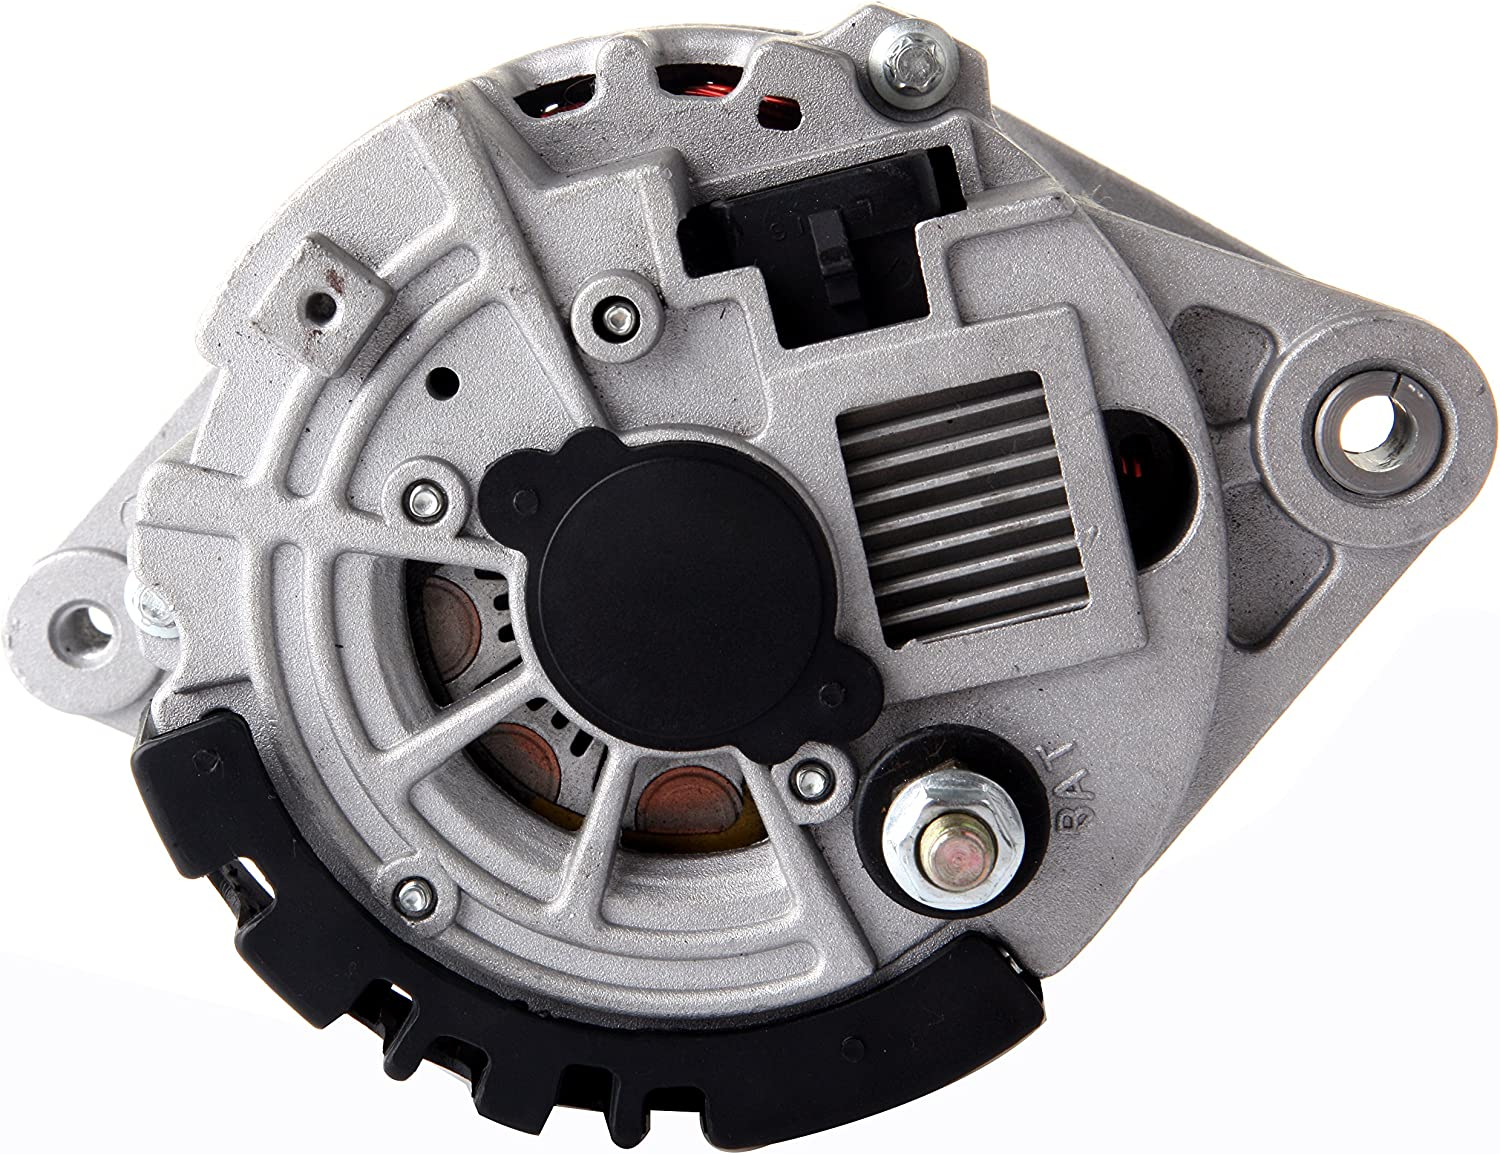 Aintier Alternators ADR0258 113350 400-12223 8280 Compatible with Daewoo Auto and Light Truck Lanos 1998-2002 1.6L 1999-2002 1.5L